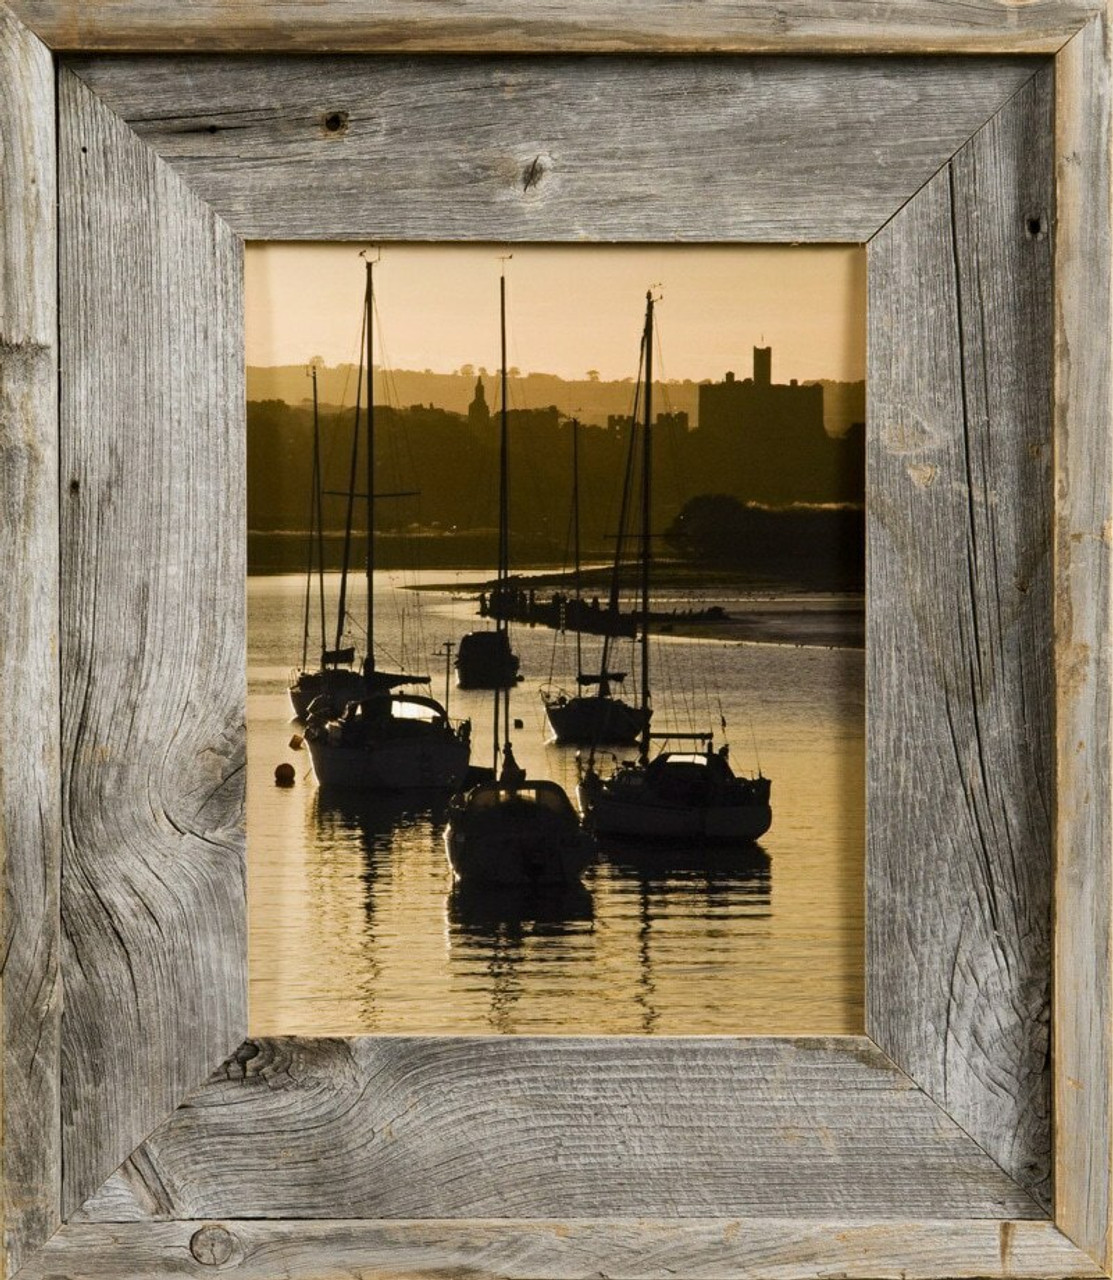 Barnwood Frame |Reclaimed Rustic Wood 24x36 Picture Frames